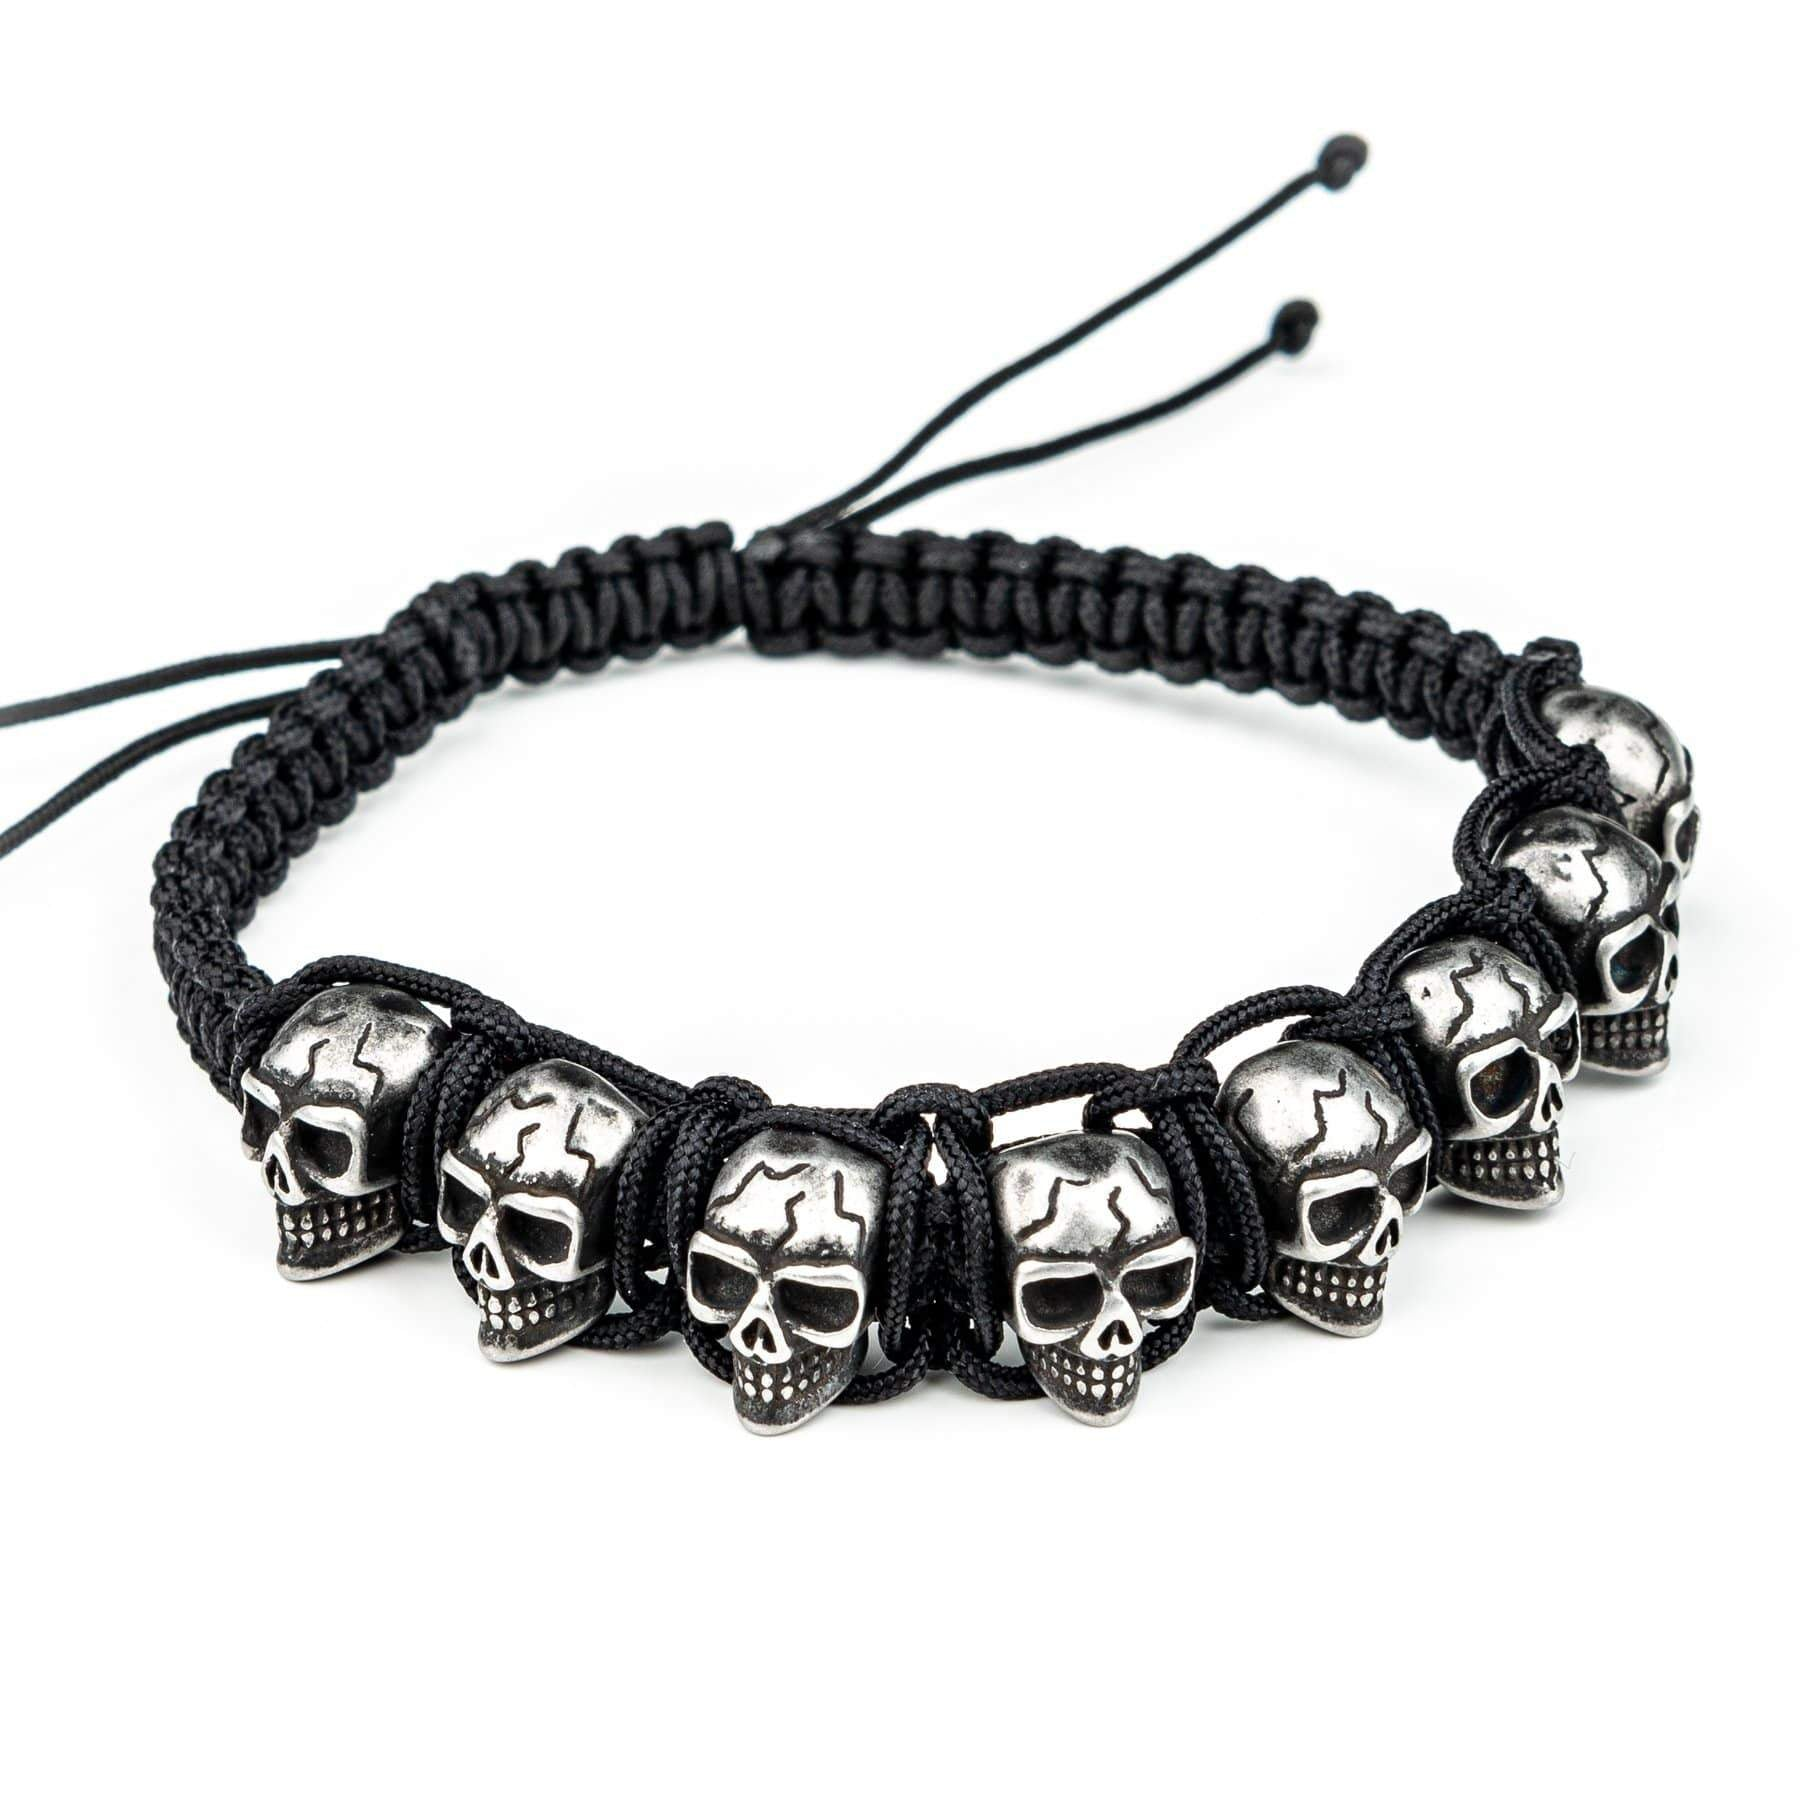 Wornstar Clothing Confirmed stainless steel skull bracelet with braided nylon cord.